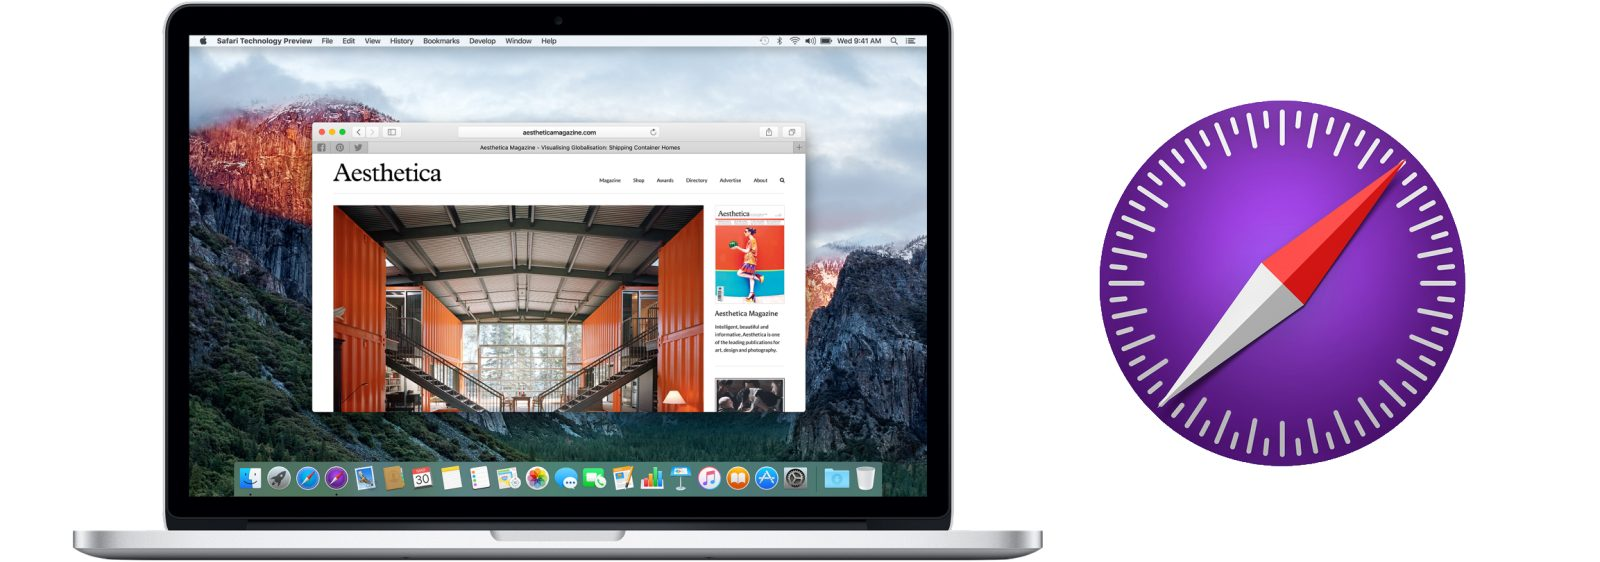 Apple pushes first update to Safari Technology Preview - 9to5Mac